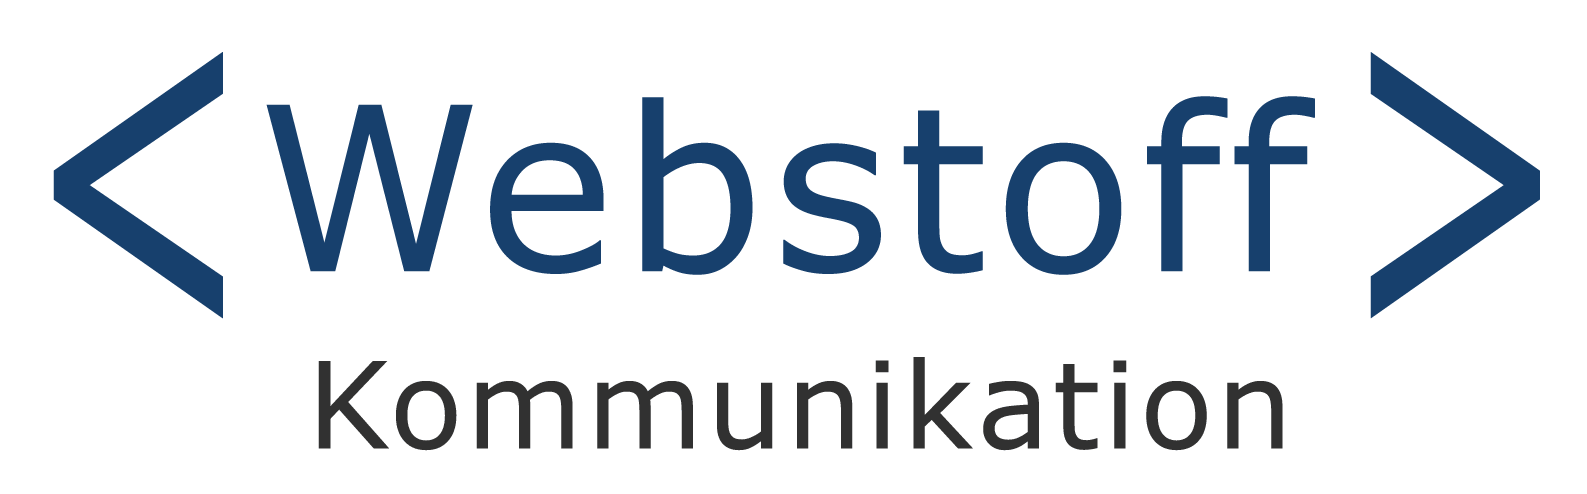 Webstoff Kommunikation - Online Marketing und IT Beratung